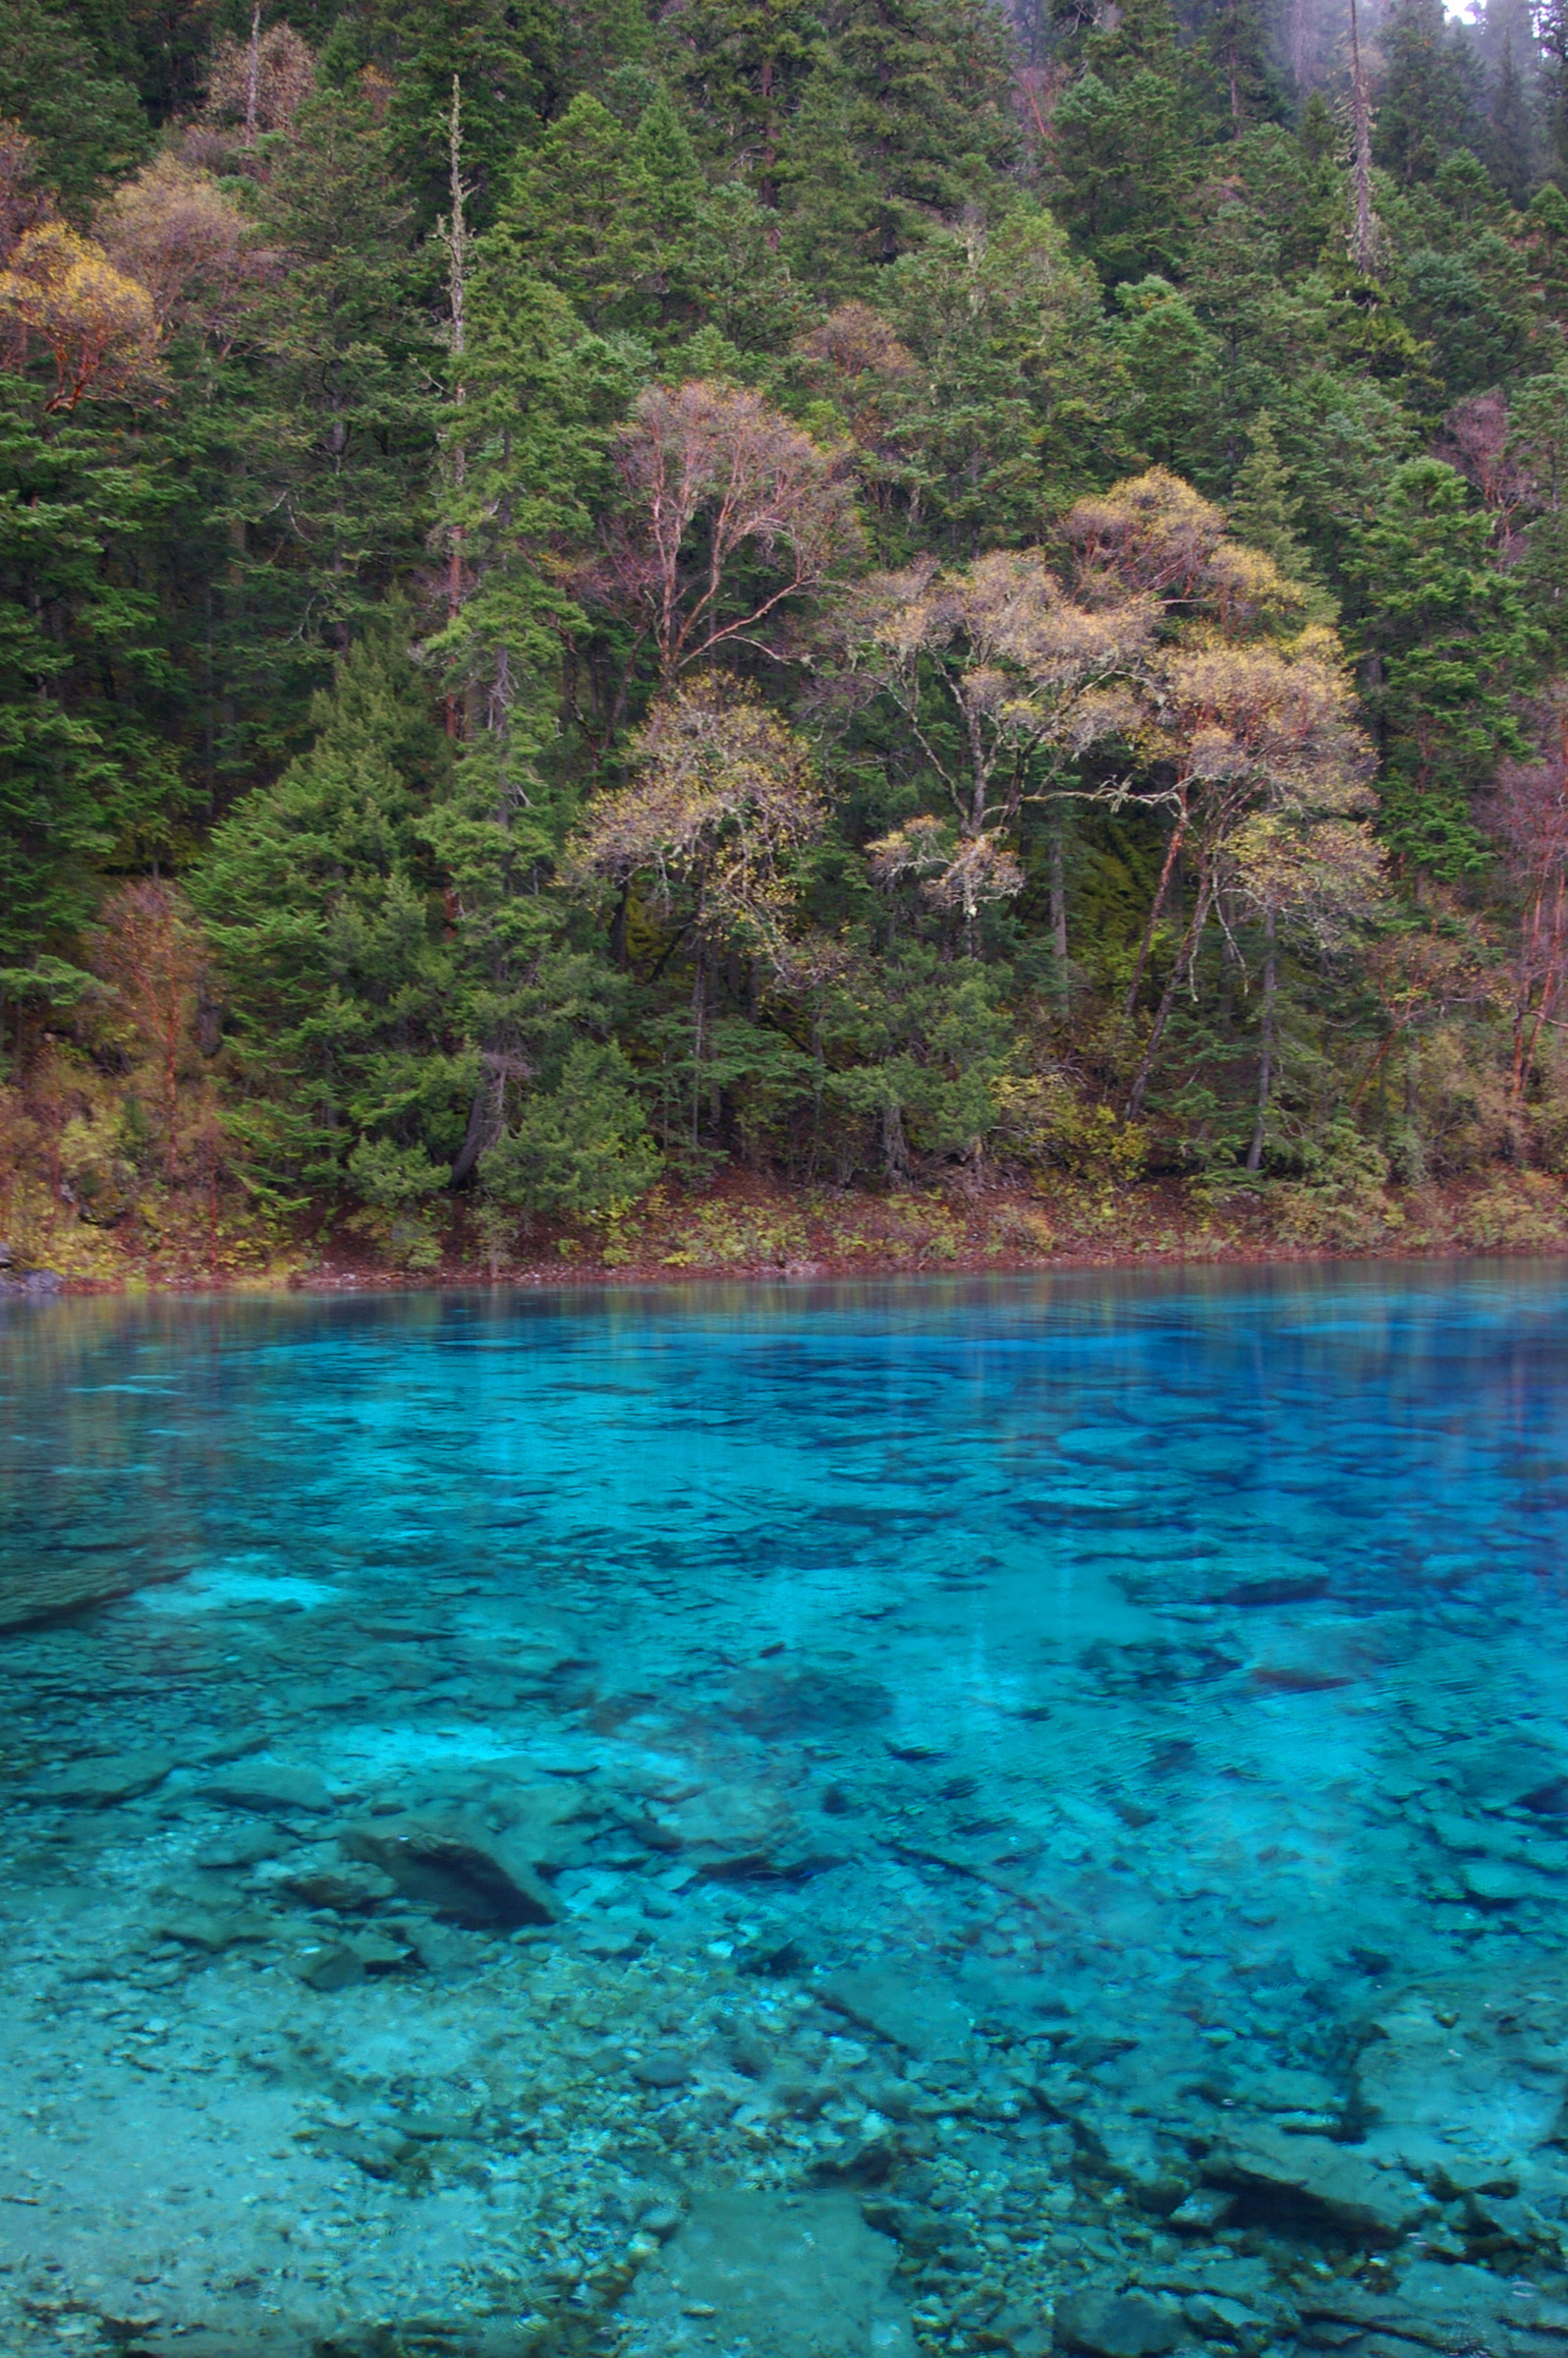 Serenity at Beautiful Clear Cyan Blue Lake with Trees on Sides Located in China.